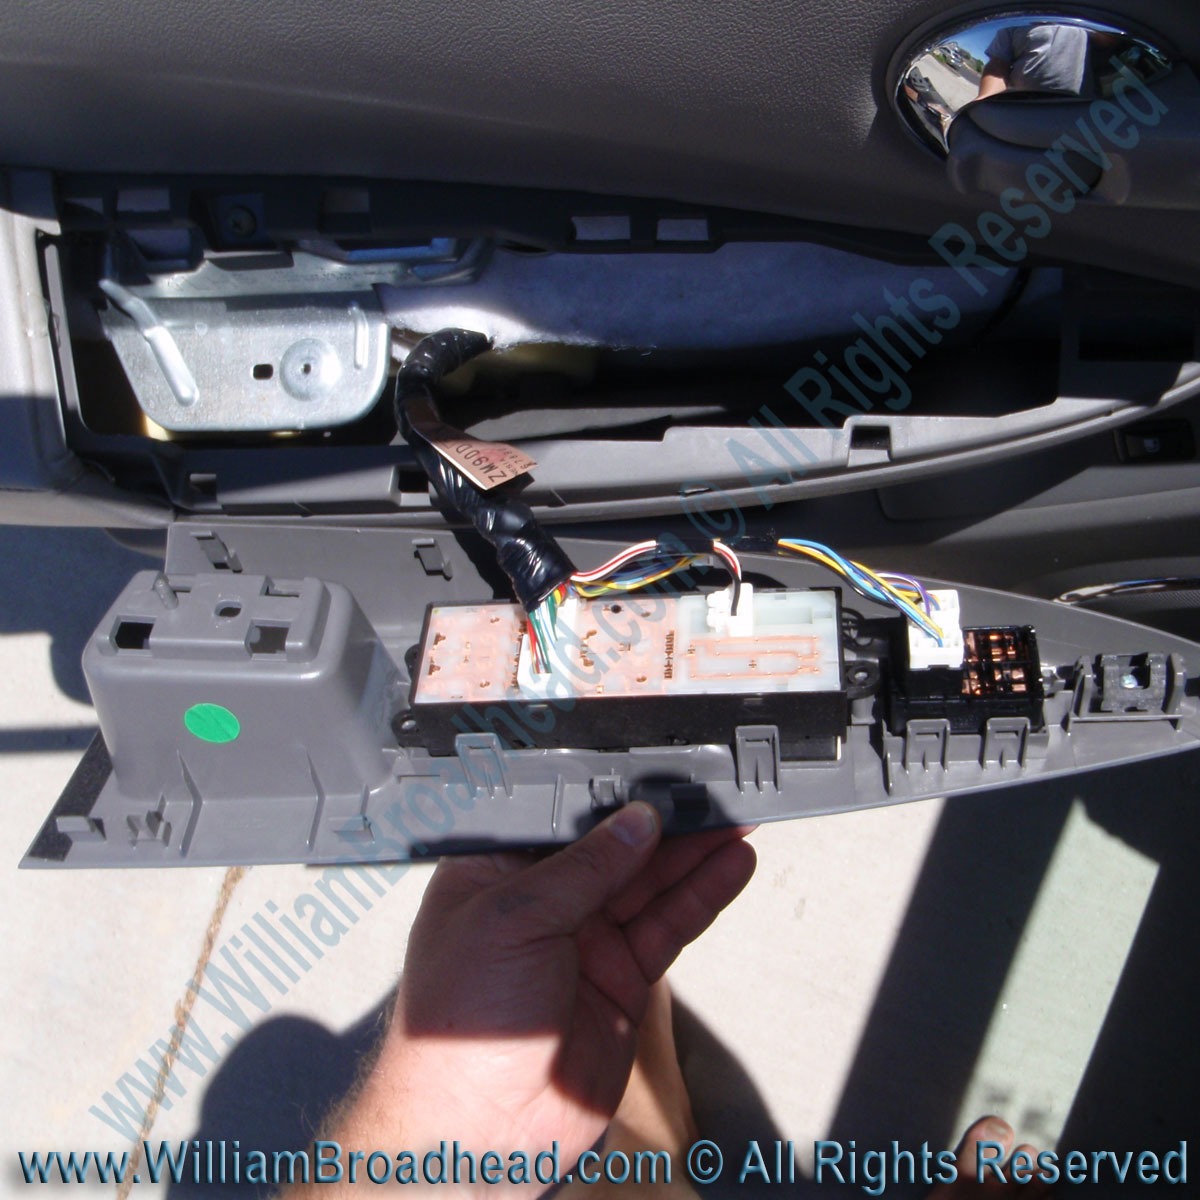 similiar 2006 nissan quest radio keywords diagram dvd for nissan quest 2004 on 2006 nissan quest wiring diagram